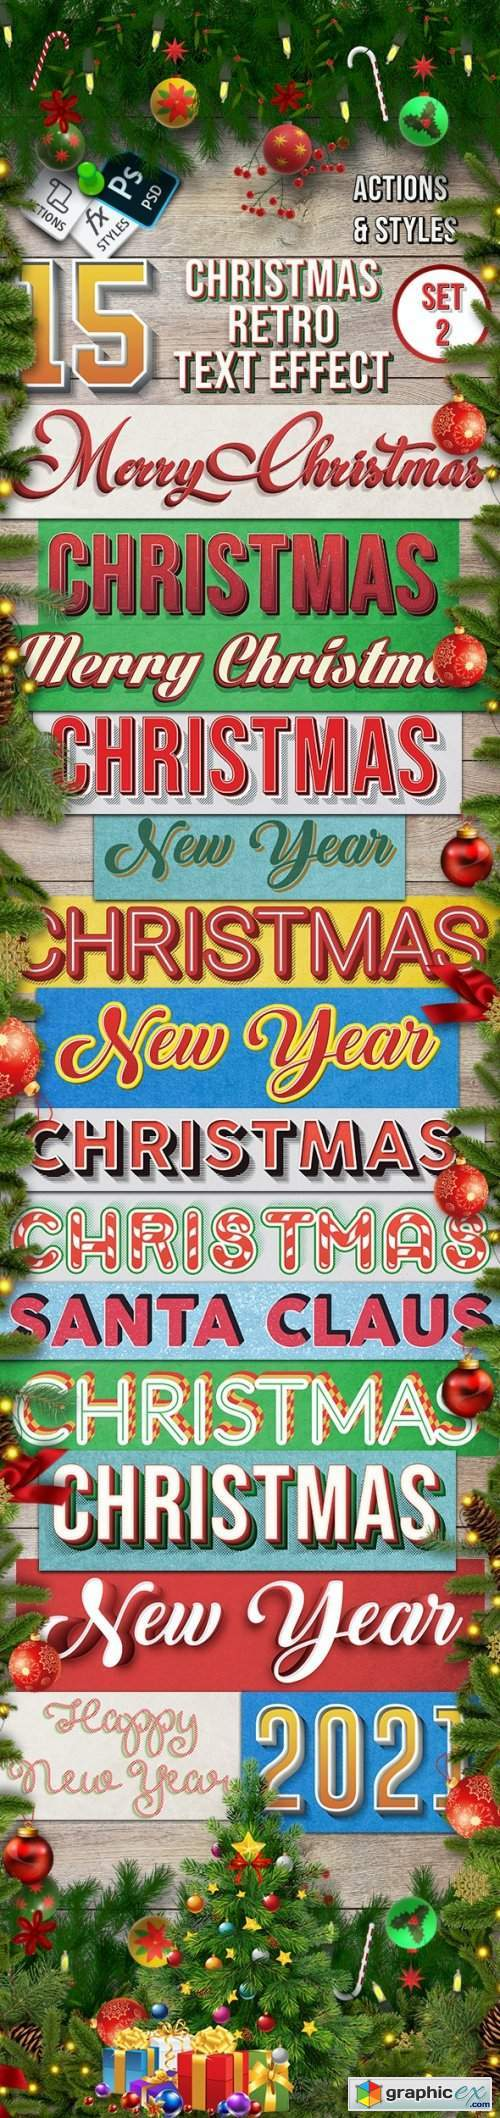 Christmas Retro Text Effect Set 2 - 15 Different Styles